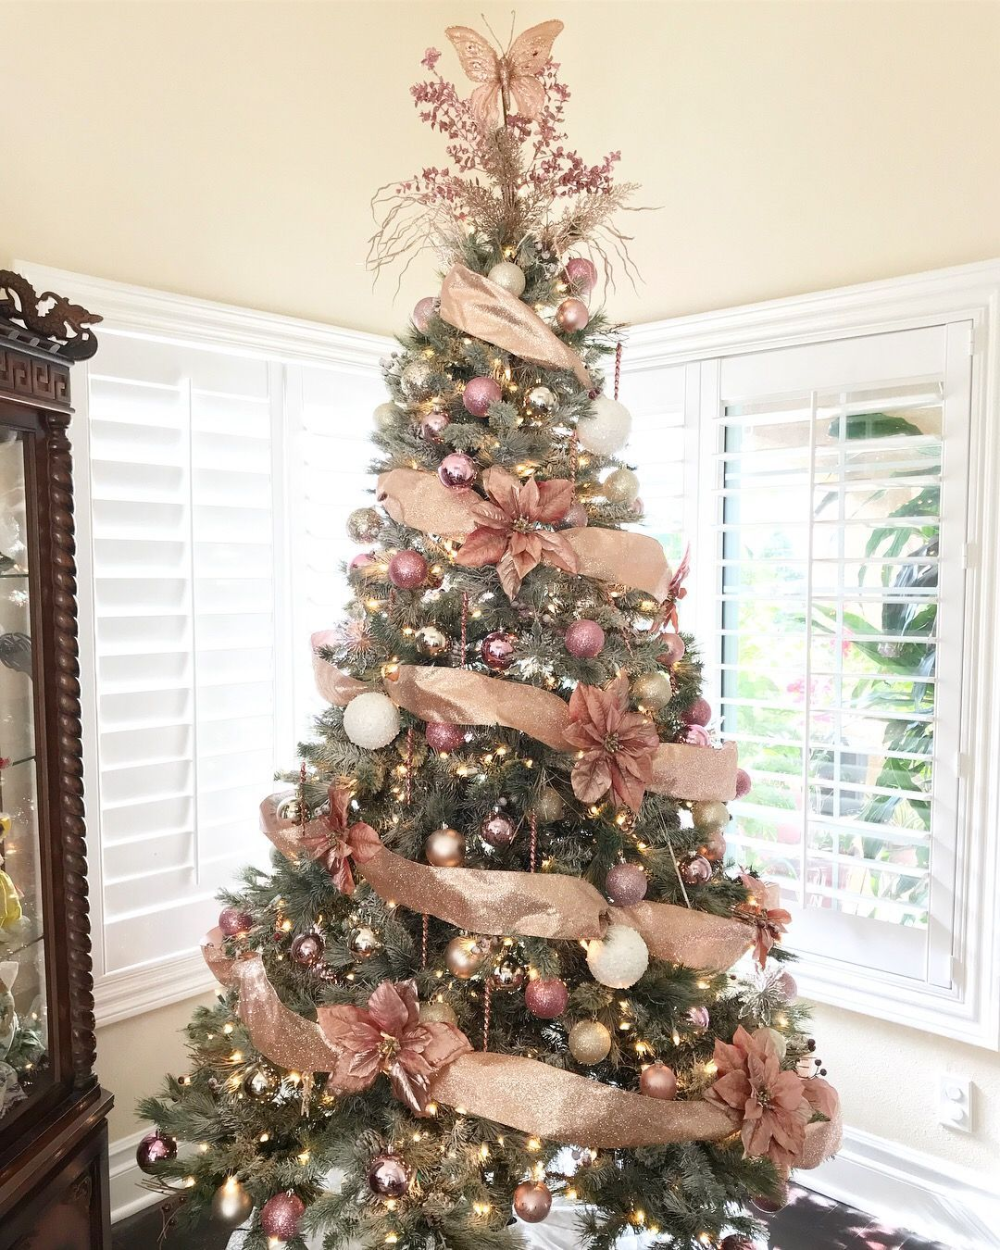 Christmas Tree With Bows Pinterest Ecosia Rose Gold Christmas Decorations Rose Gold Christmas Rose Gold Christmas Tree